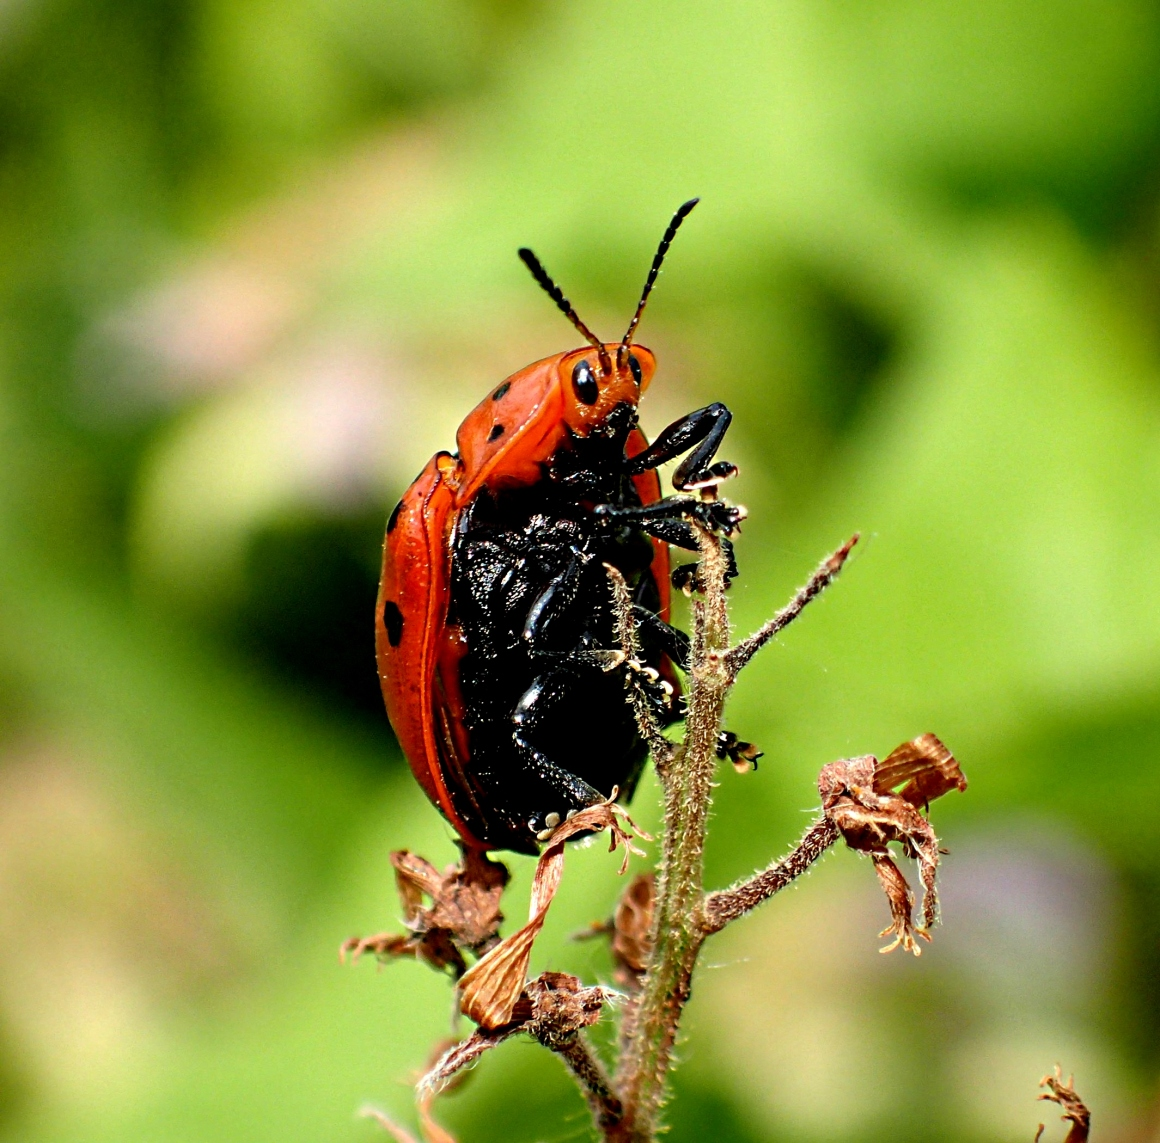 Ladybug surveying the landscape from a good vantage point. Photo by Thomas Peace 2014